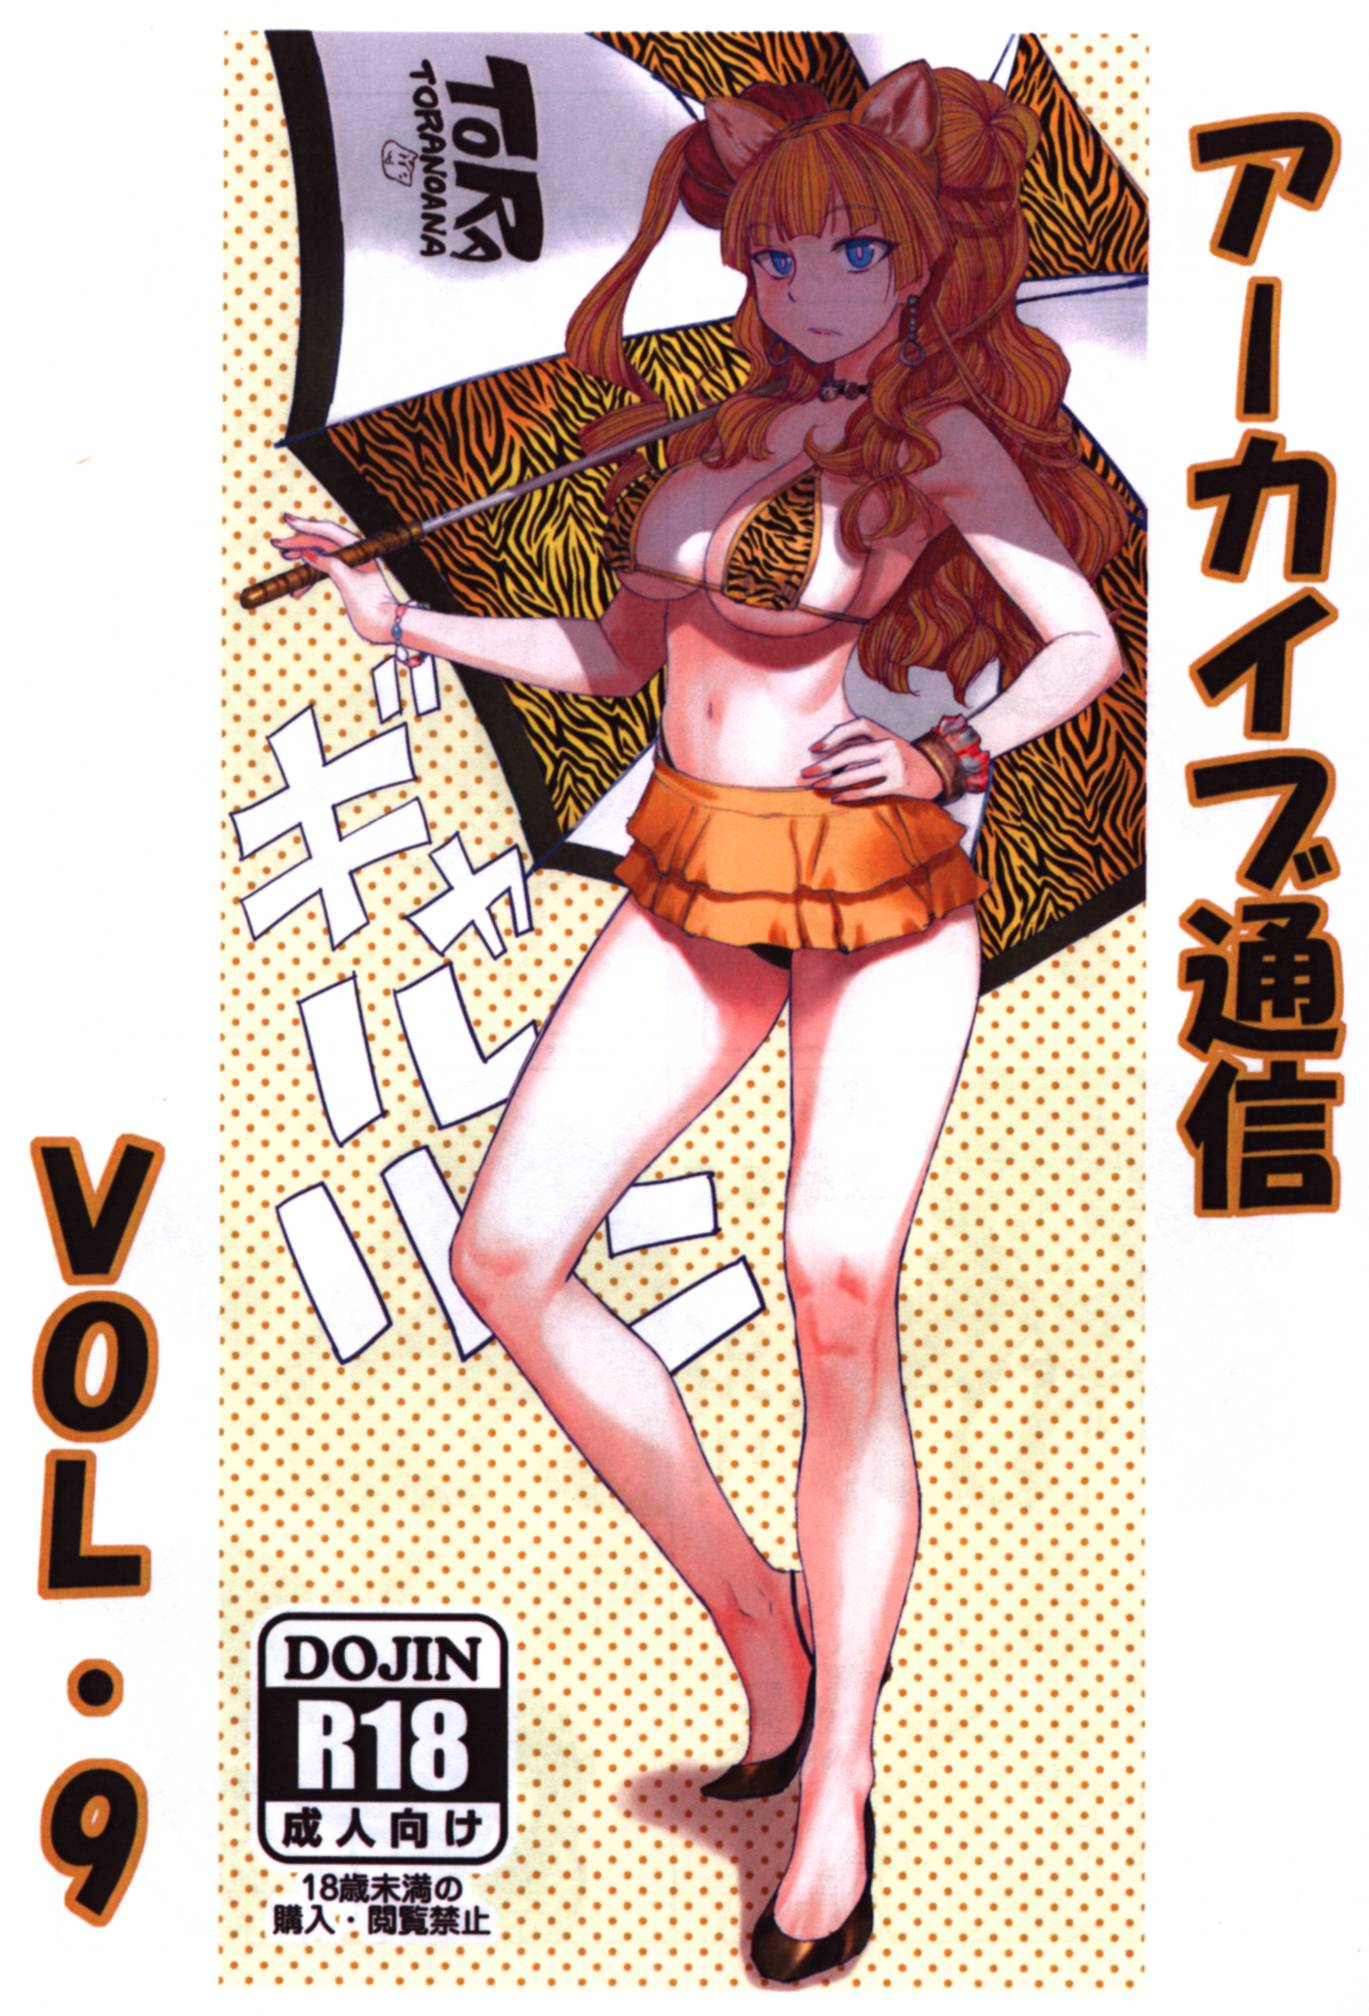 [Adult] Doujinshi - アーカイブ通信 VOL・9 / アーカイブ (ARCHIVES)